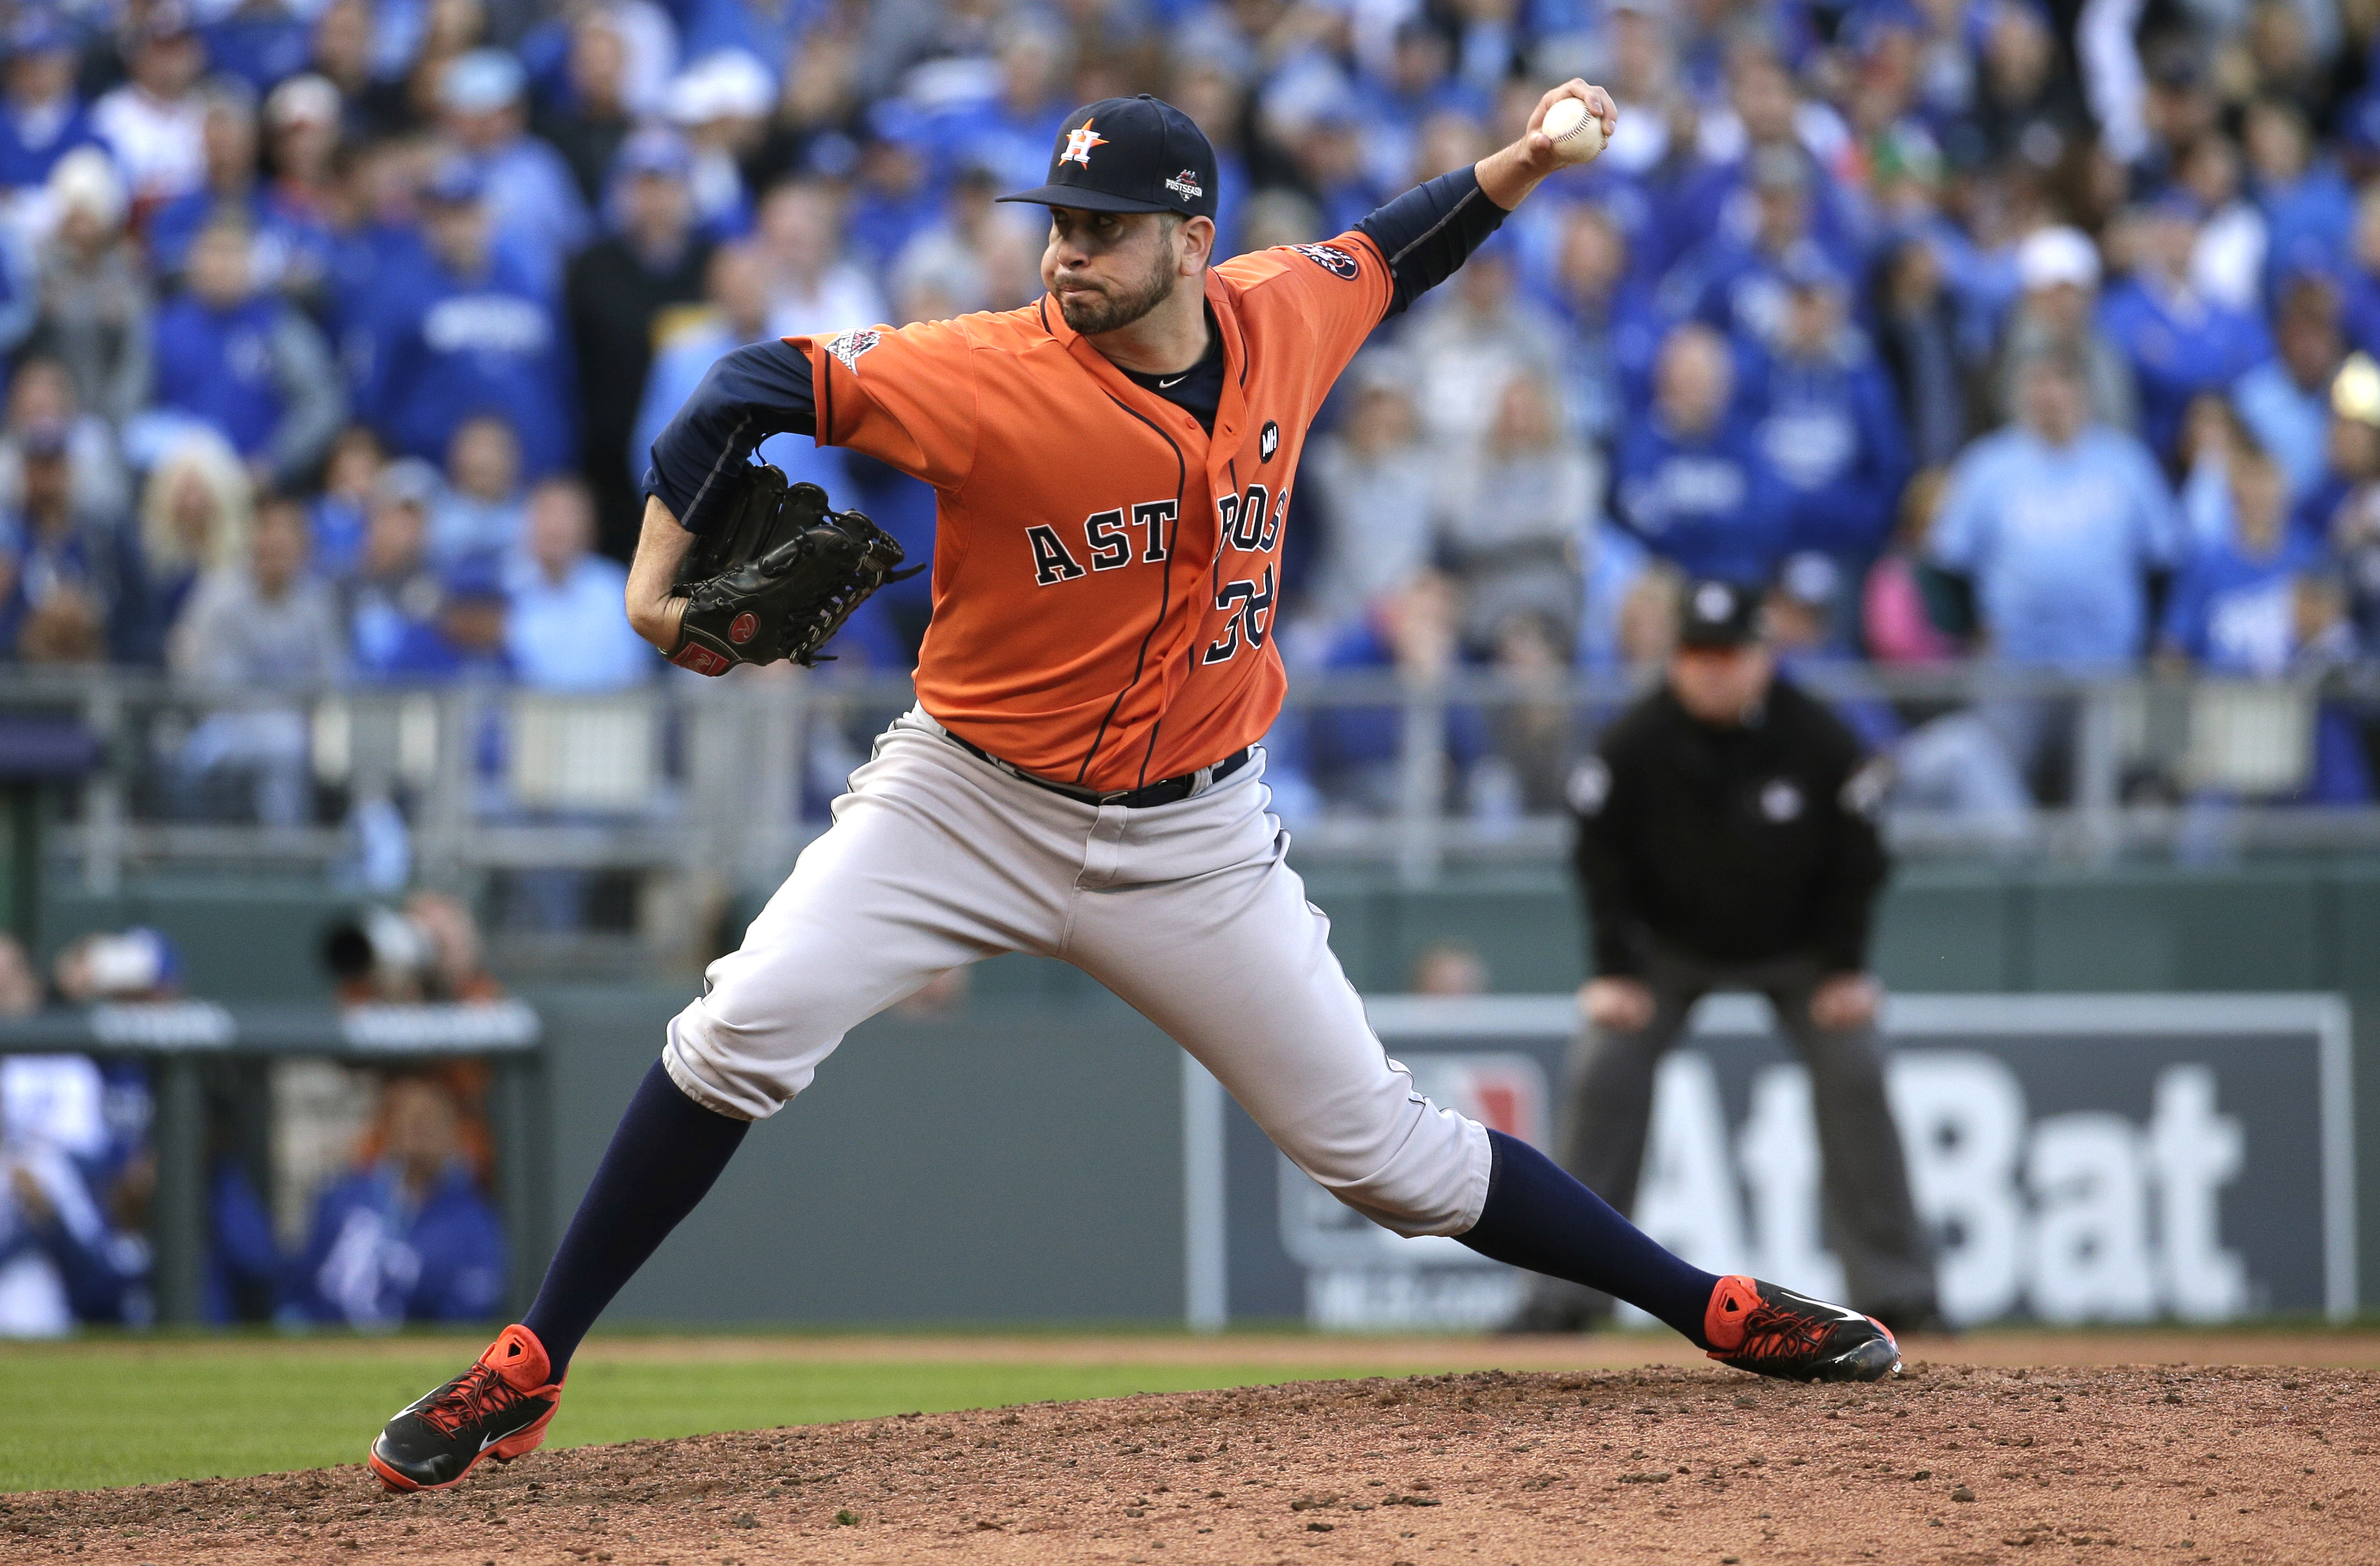 FILE - In this Oct. 9, 2015 file photo, Houston Astros relief pitcher Oliver Perez throws a pitch during the sixth inning of Game 2 in baseball's American League Division Series against the Kansas City Royals, in Kansas City, Mo. Rebuilding their middle r